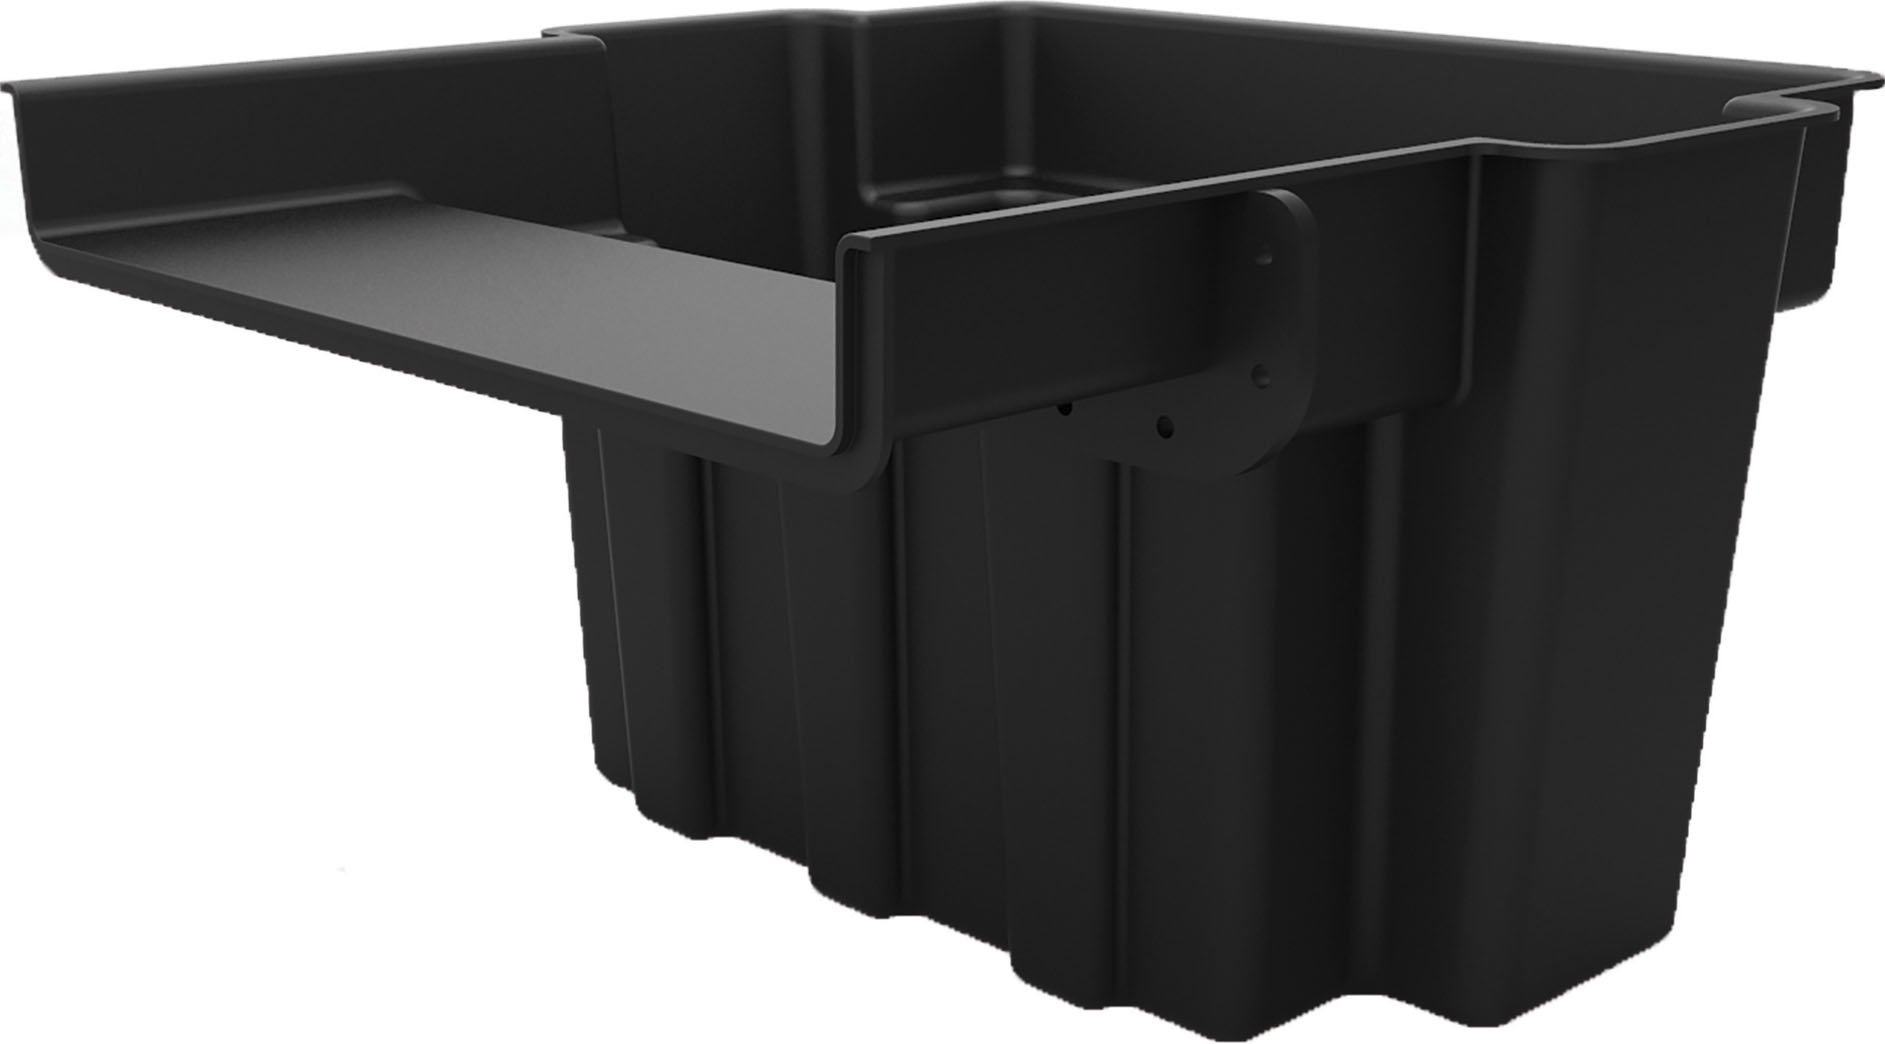 Oase-Living Water-Oase Waterfall Filter Spillway- Black 16 Inch